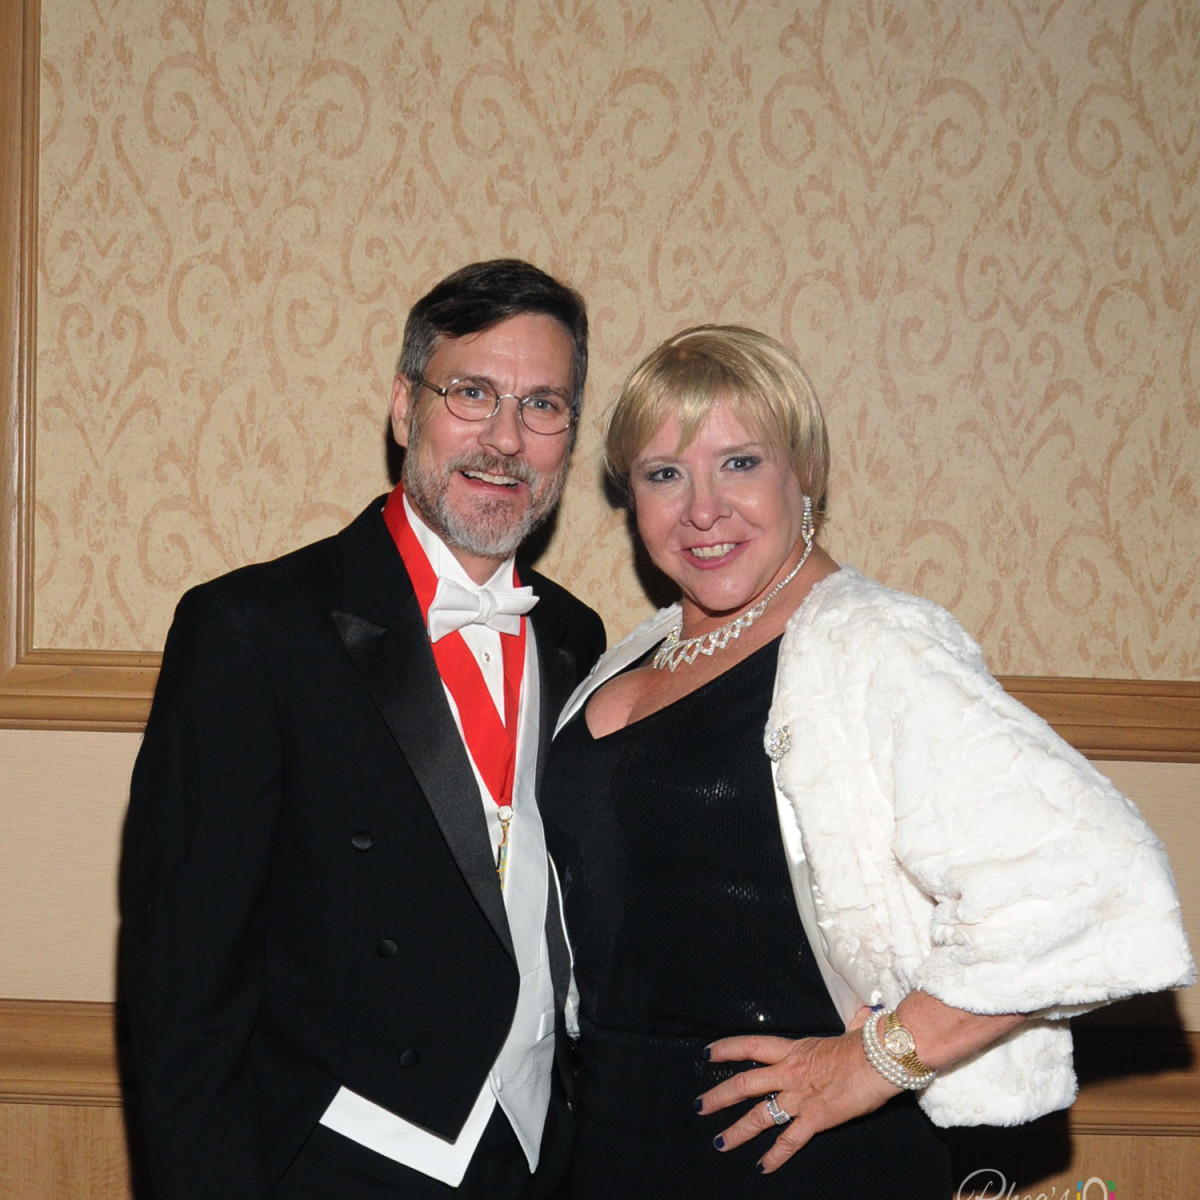 Knights of Momus Ball, Feb. 2016, Robert Kline, Sally Kline